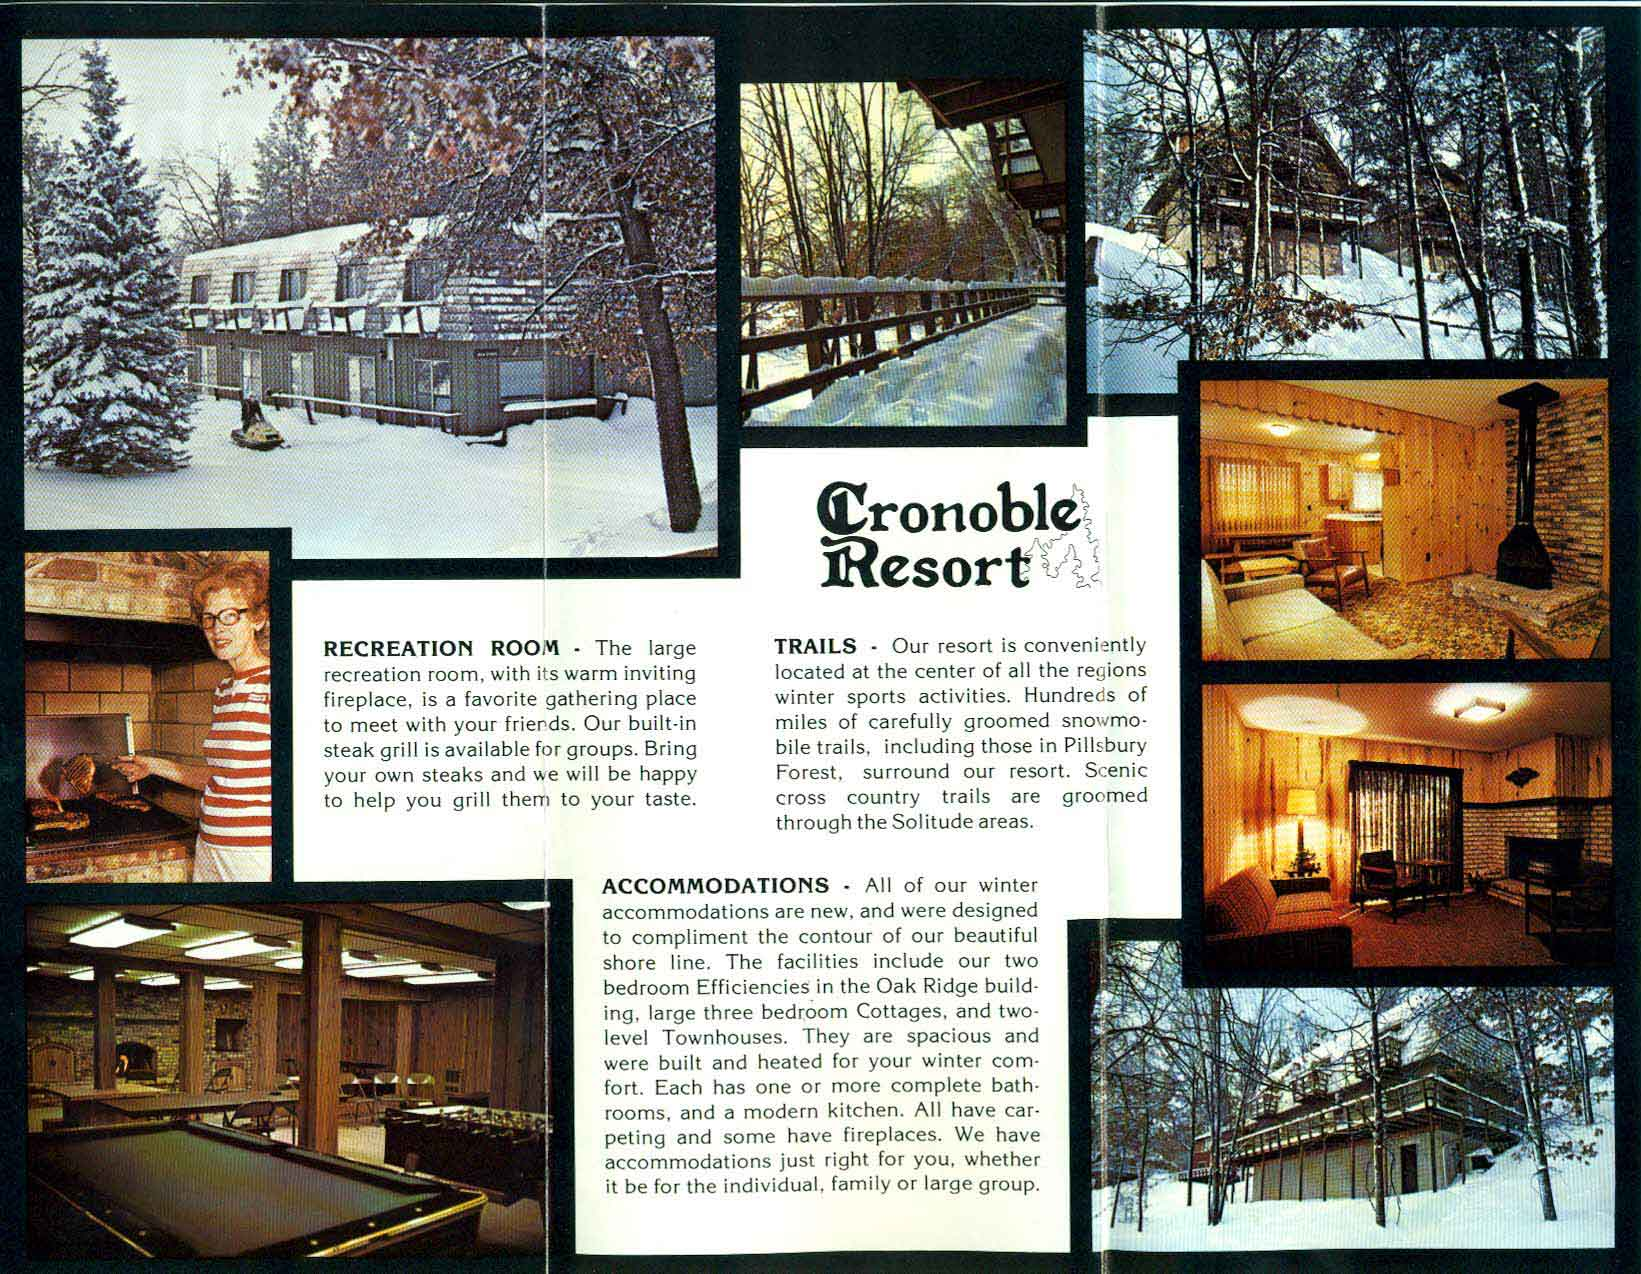 Picture collage of the former Cronable Resort in Brainerd